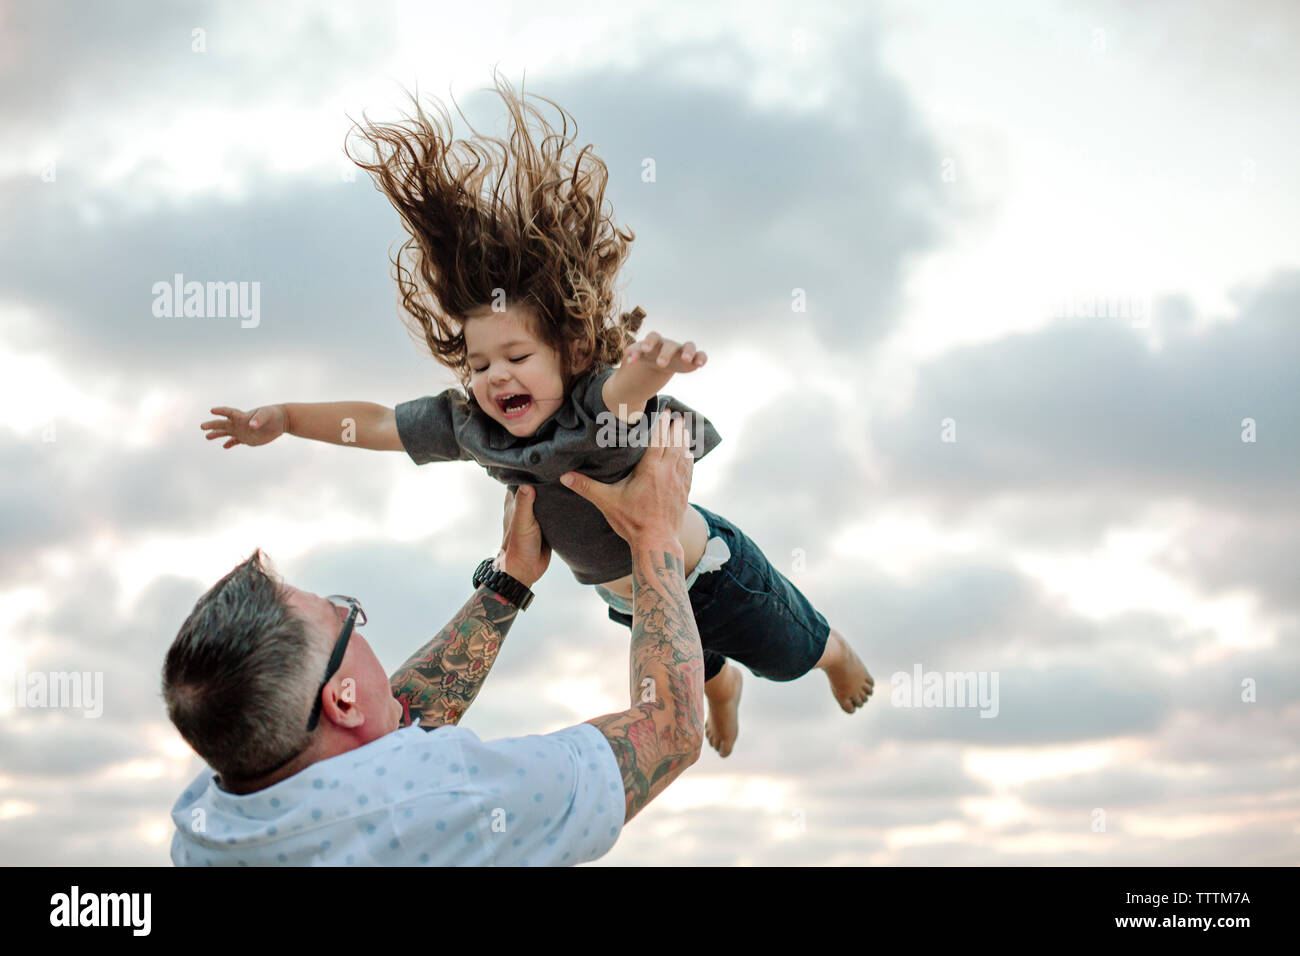 Low angle view of playful father throwing son in air while playing against cloudy sky at beach - Stock Image